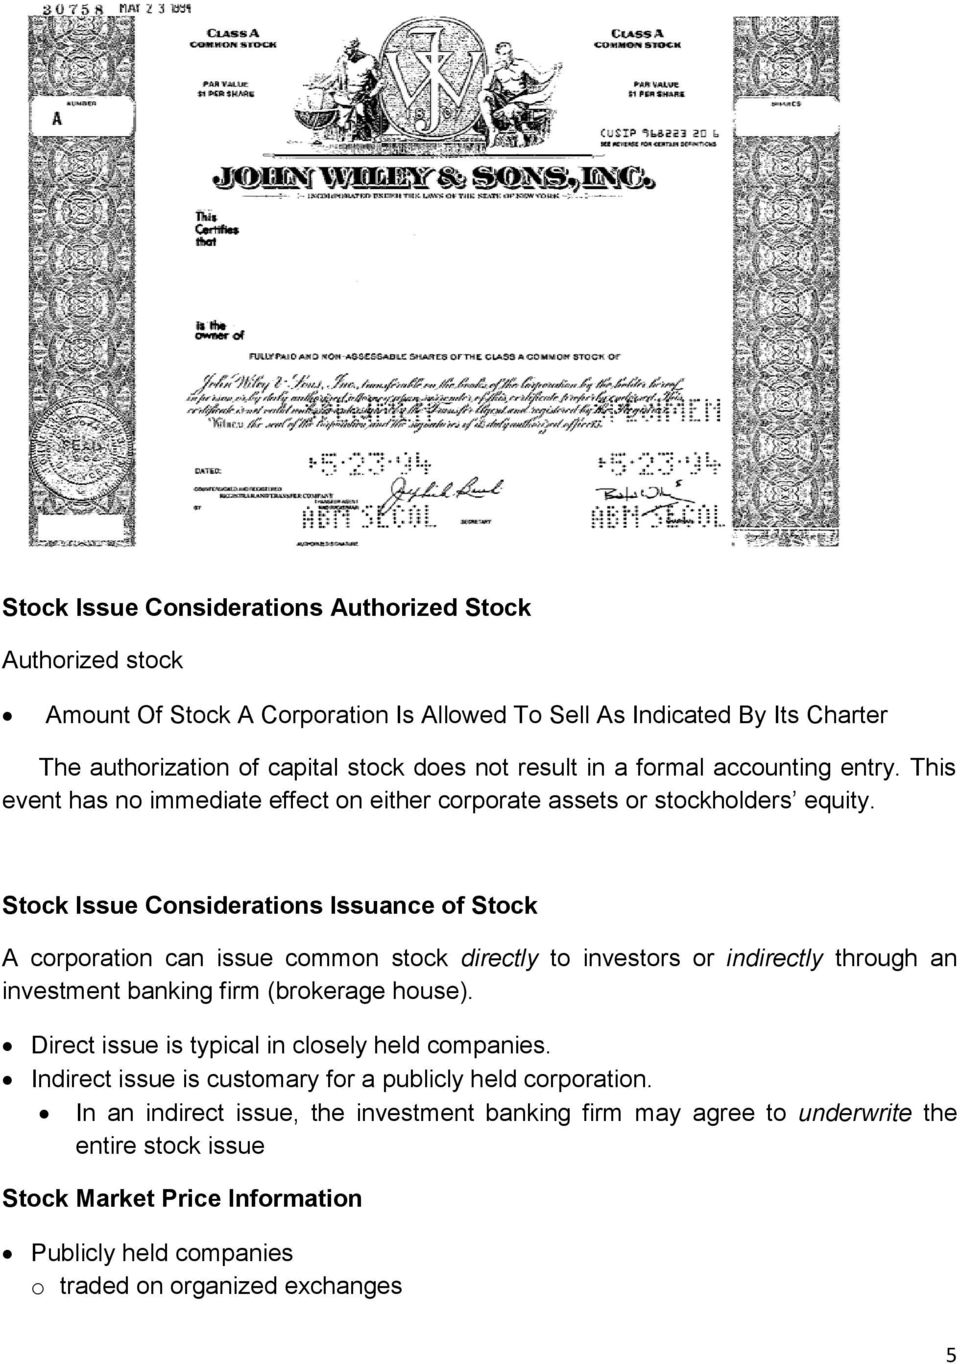 Stock Issue Considerations Issuance of Stock A corporation can issue common stock directly to investors or indirectly through an investment banking firm (brokerage house).